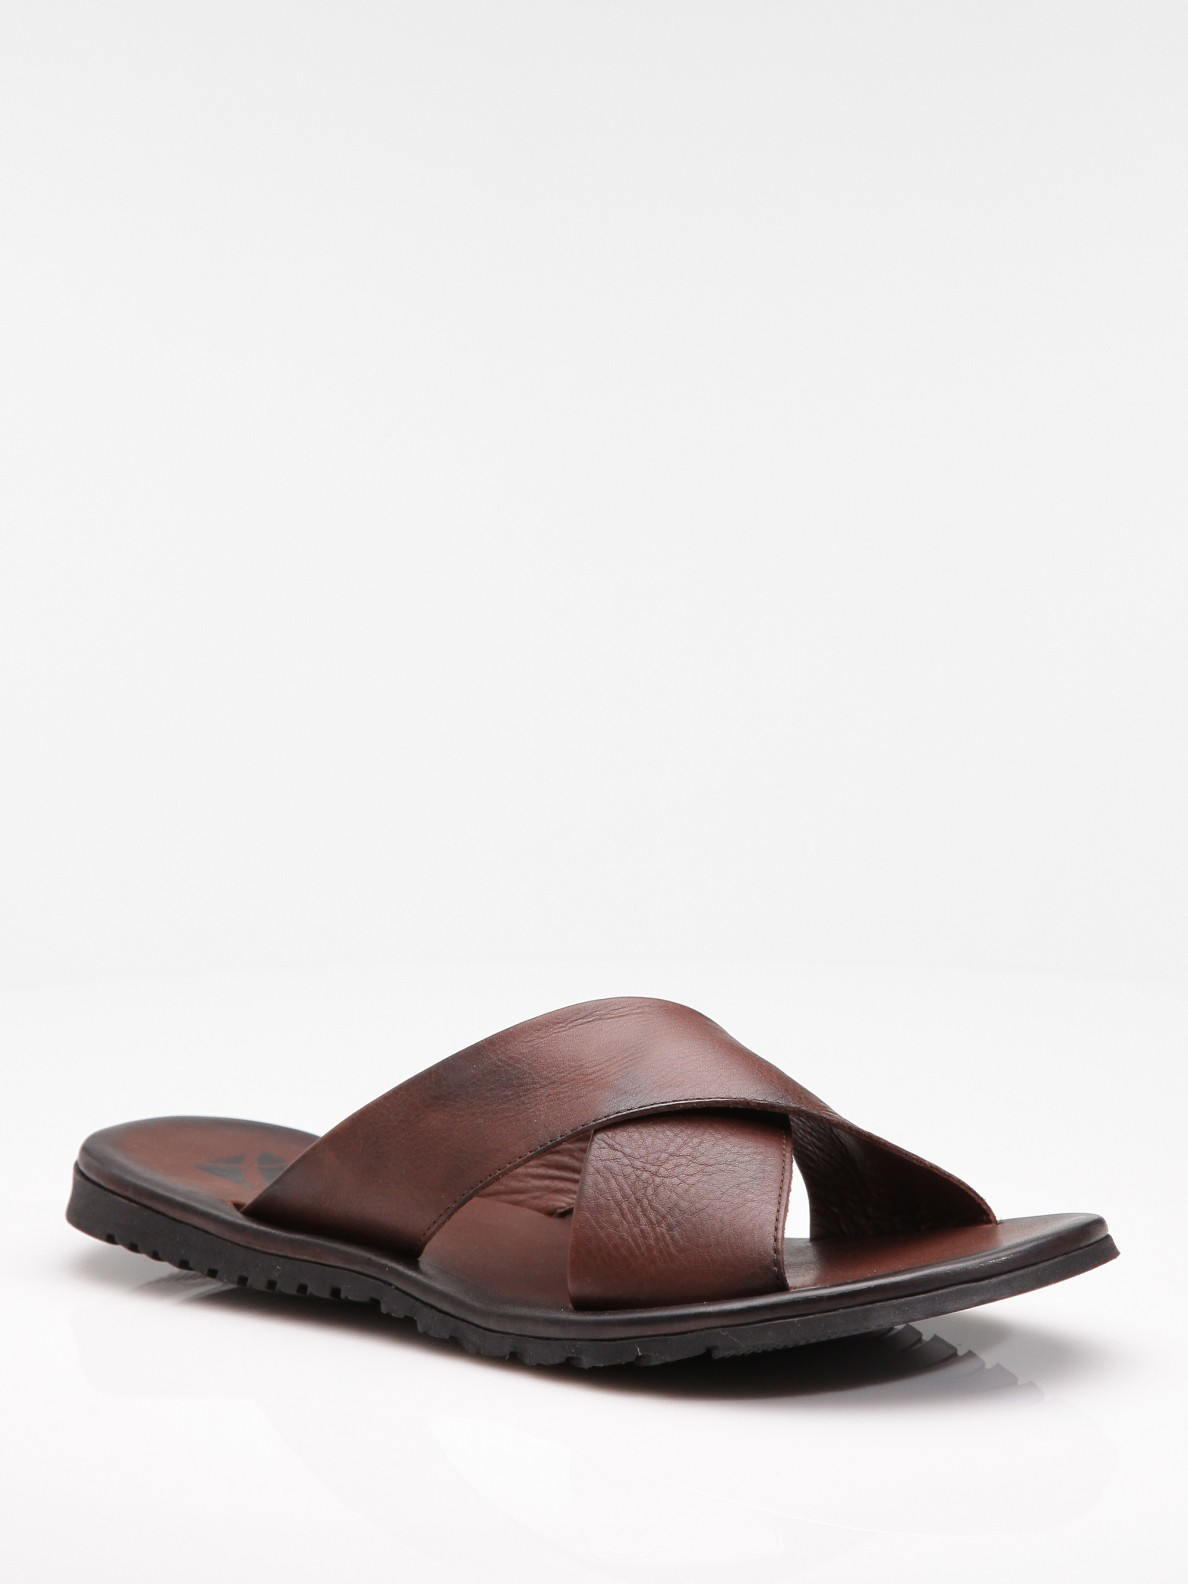 Saks Fifth Avenue Criss Cross Sandals In Tan Brown For